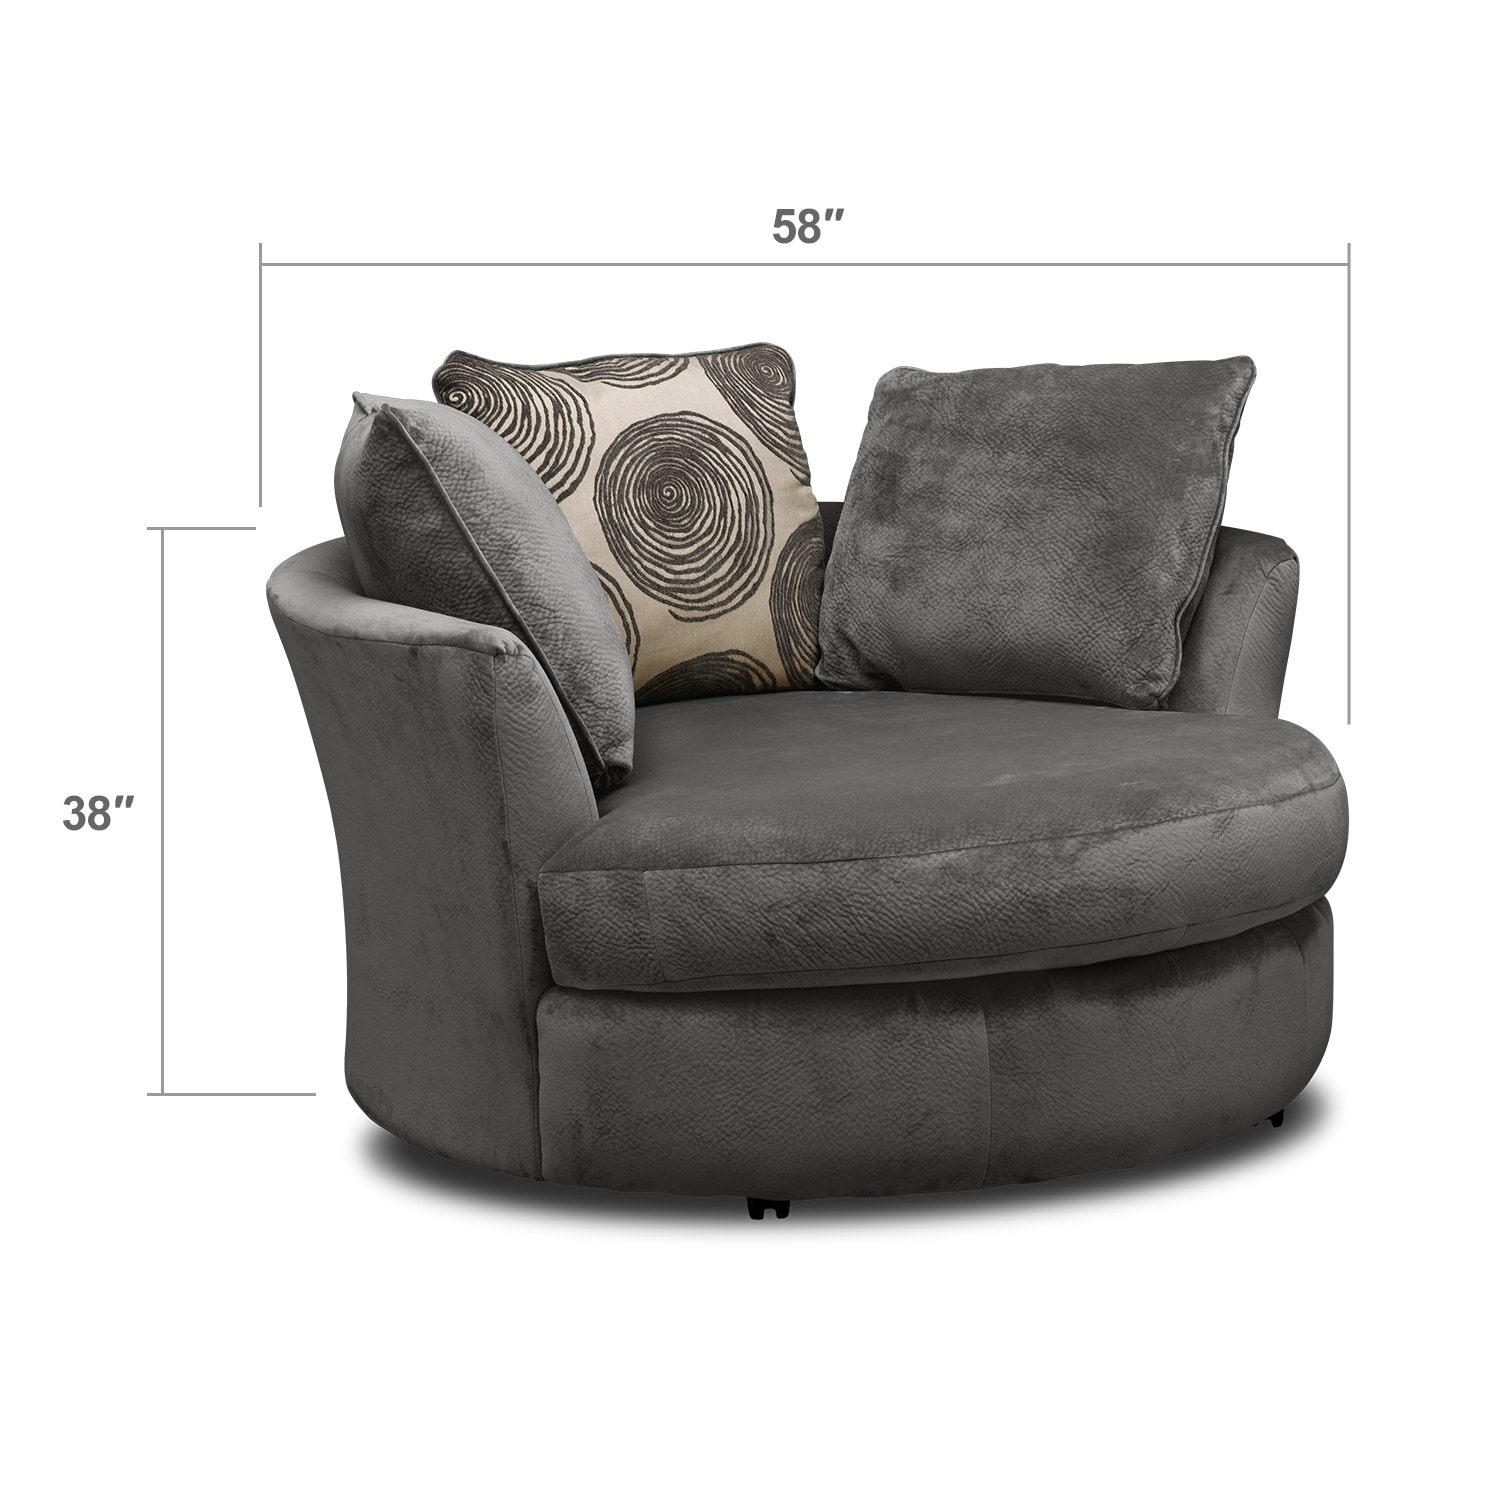 Cordoba Gray Upholstery Swivel Chair Value City Furniture : 309177 from valuecityfurniture.com size 1500 x 1500 jpeg 223kB